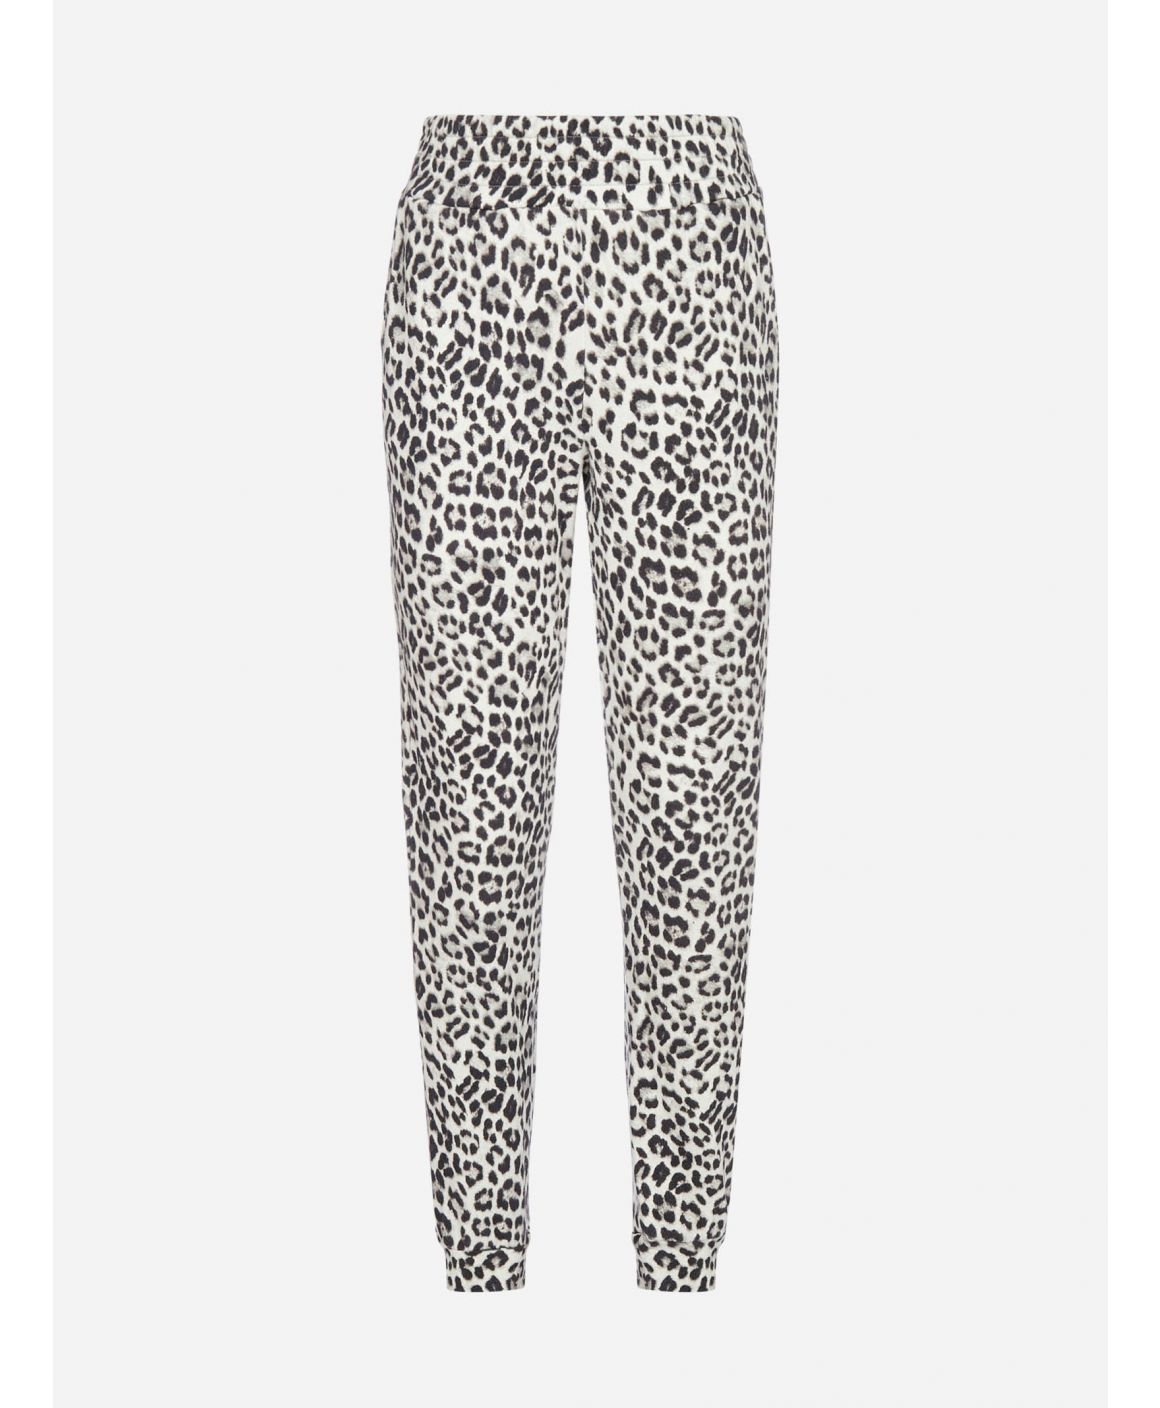 Shavon leopard print cotton trousers